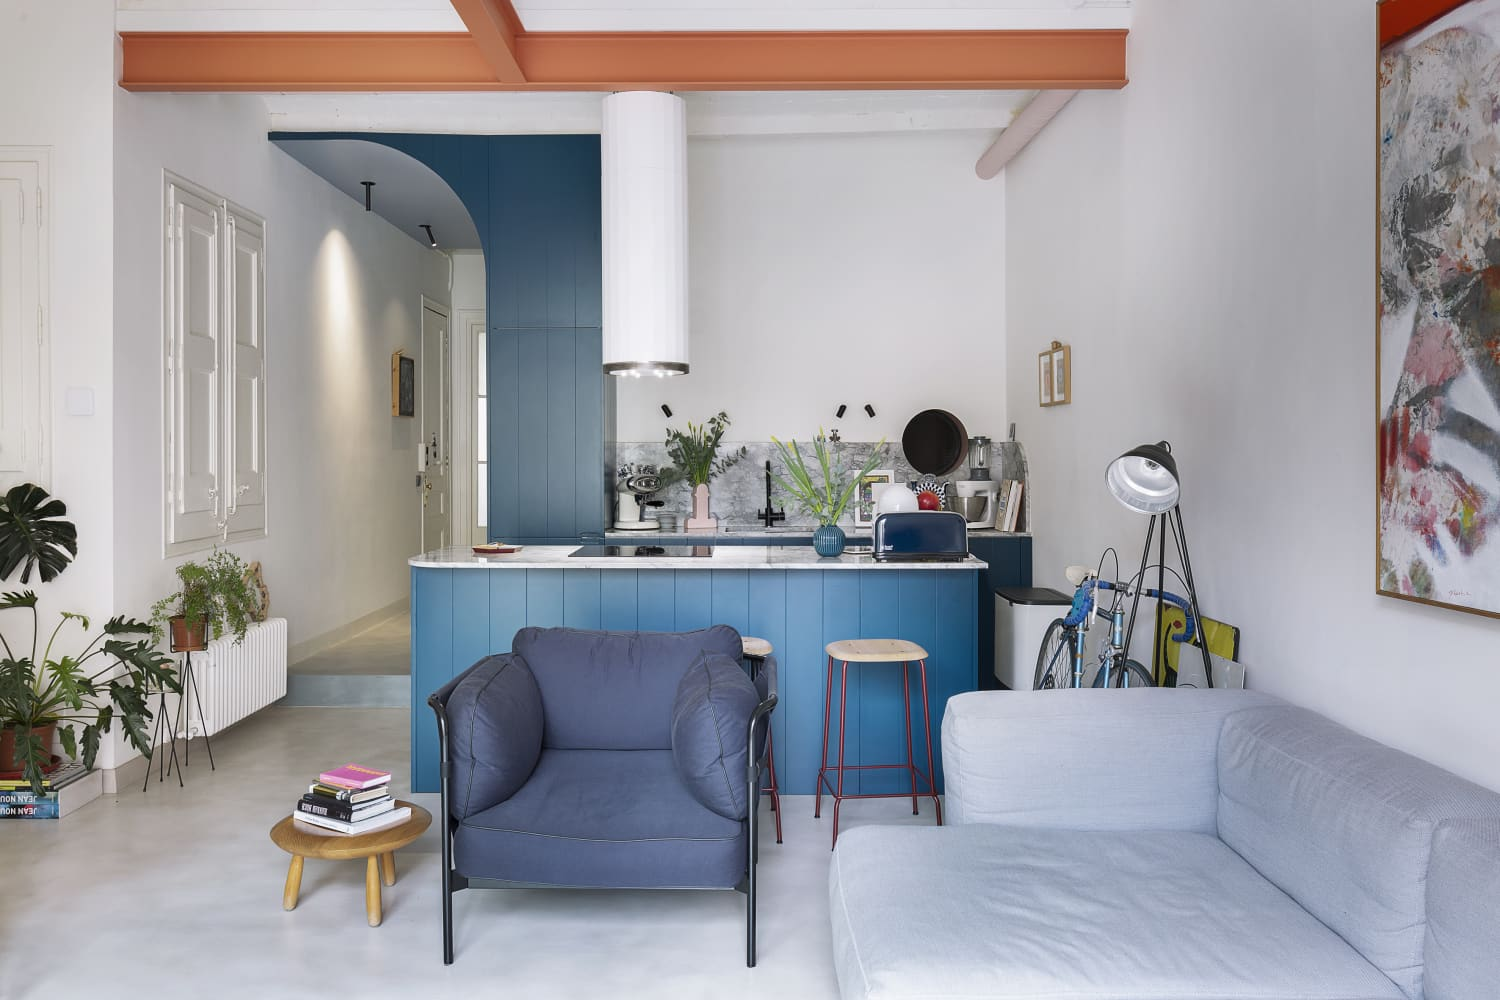 This Modern Remodel's Kitchen and Bathroom Color Palette Is Eye-Popping